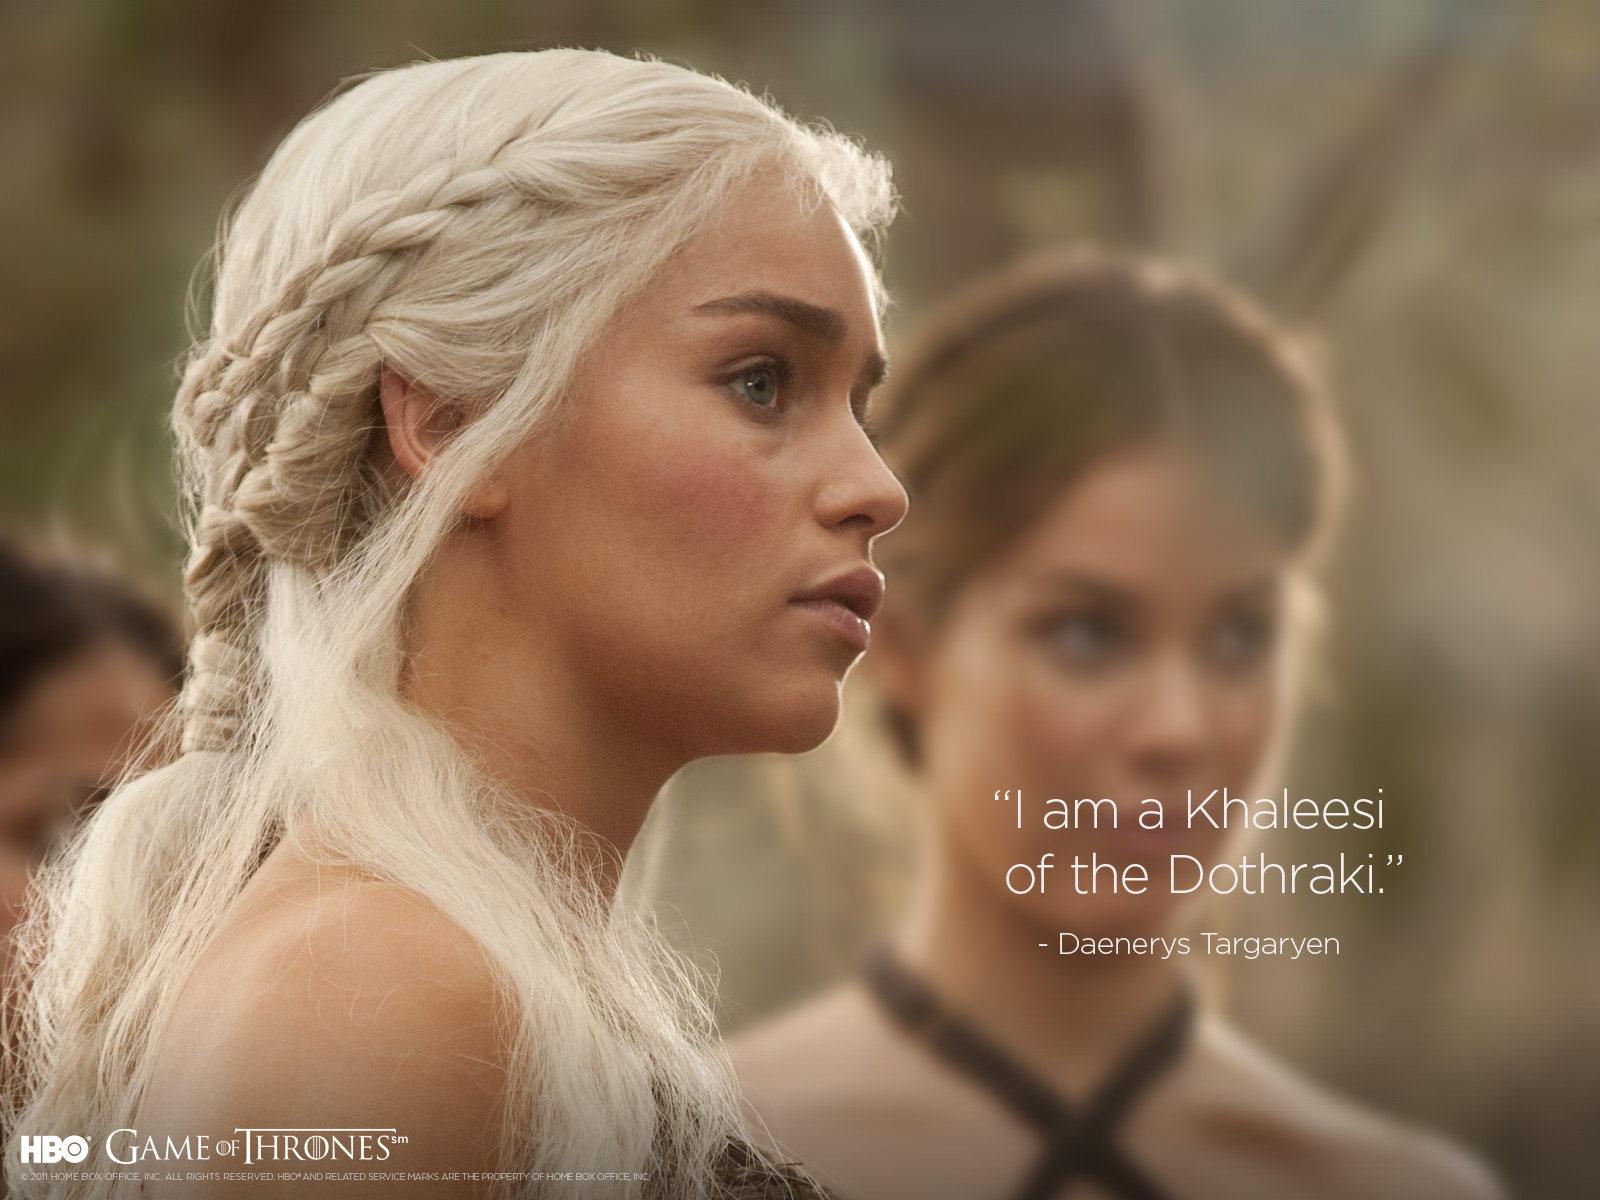 game of thrones daenerys - photo #30